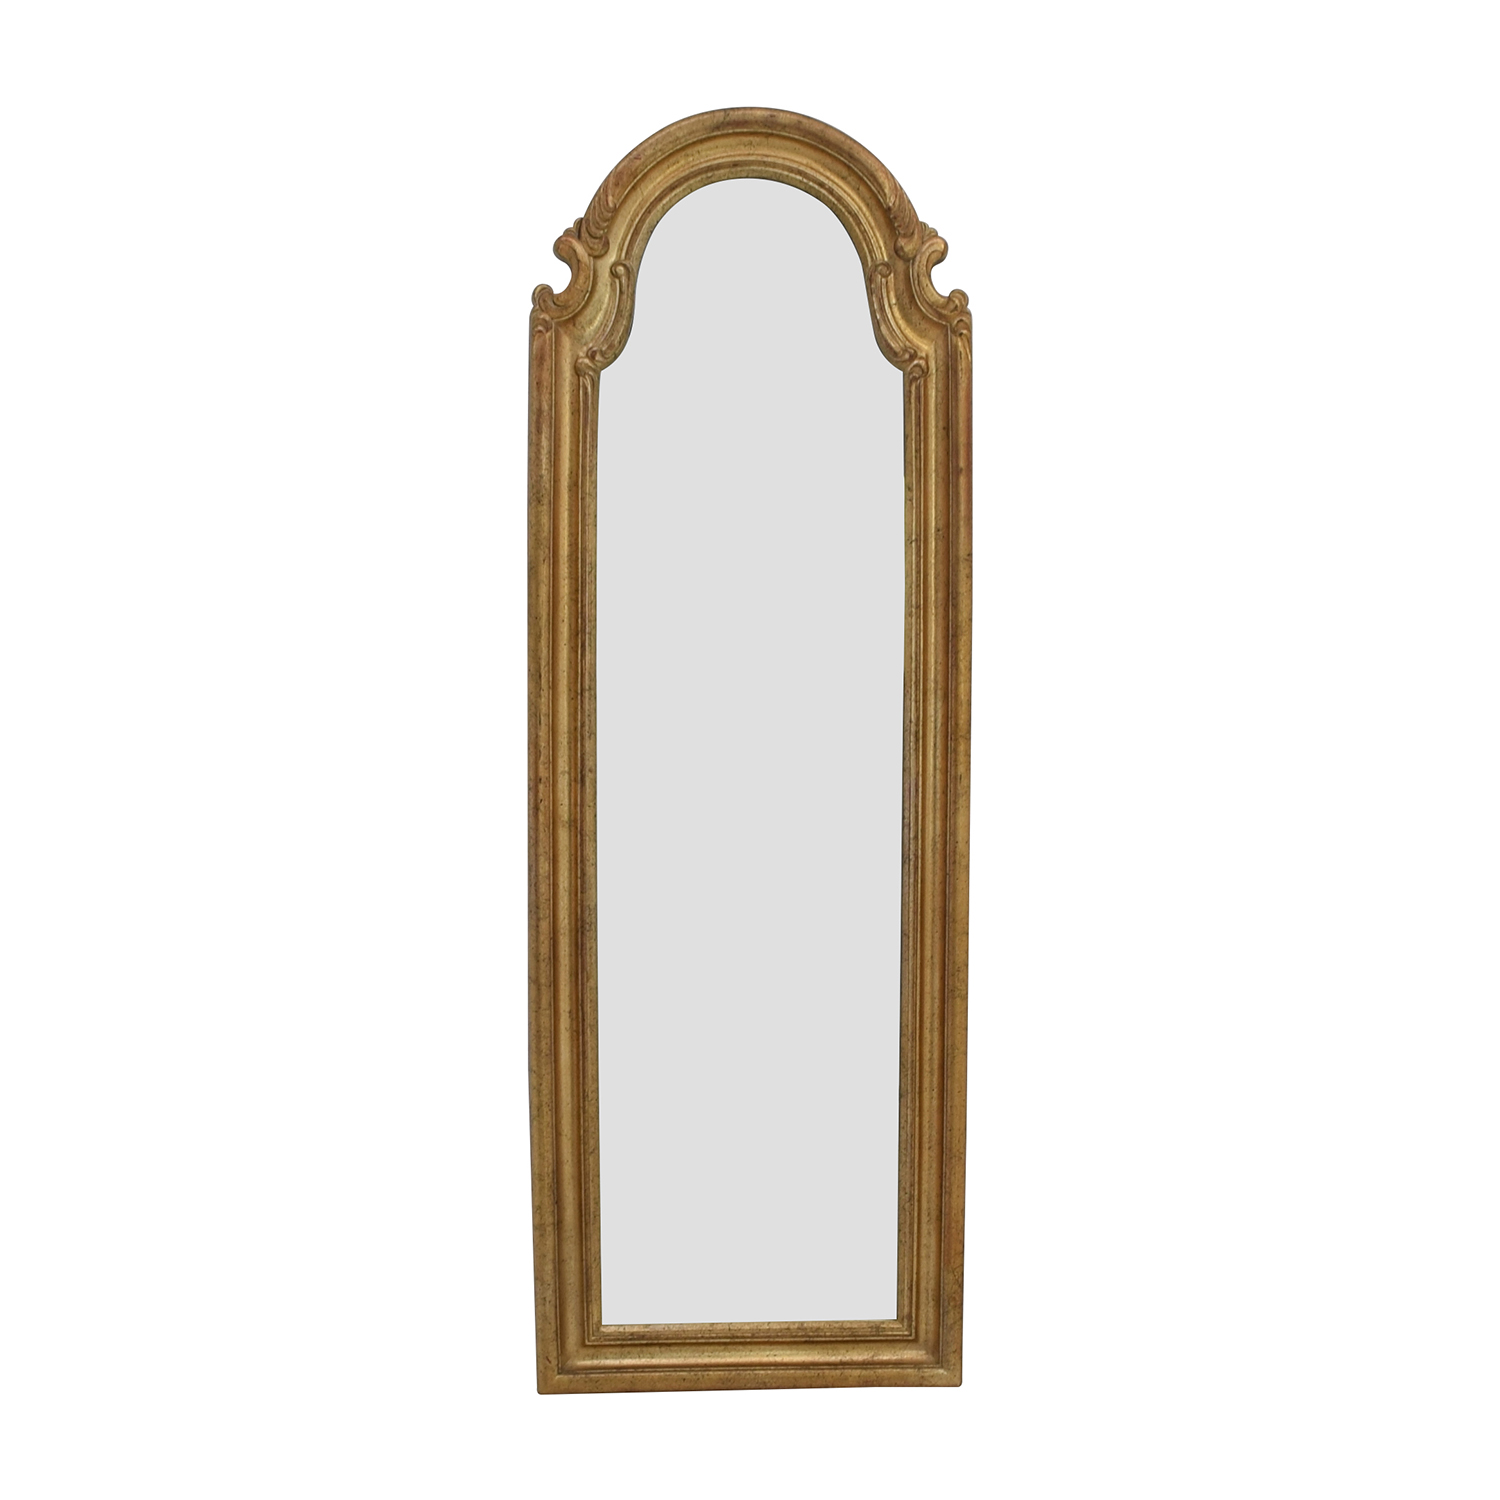 Bombay Co Bombay Co Antique Gold Wall mirror nyc